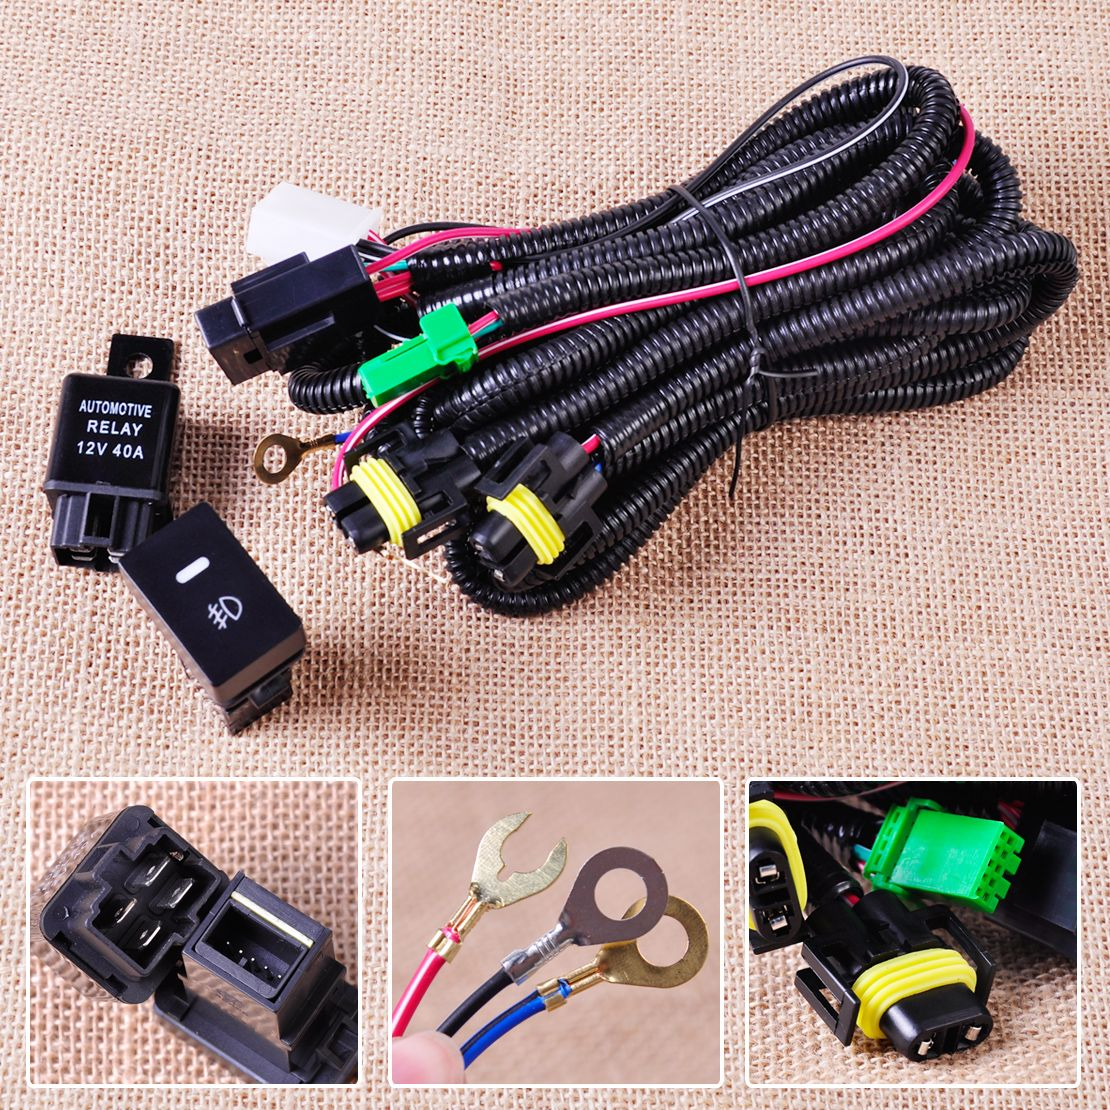 H11 Fog Light Lamp Wiring Harness Sockets Wire + Switch with ... H Wire Harness on